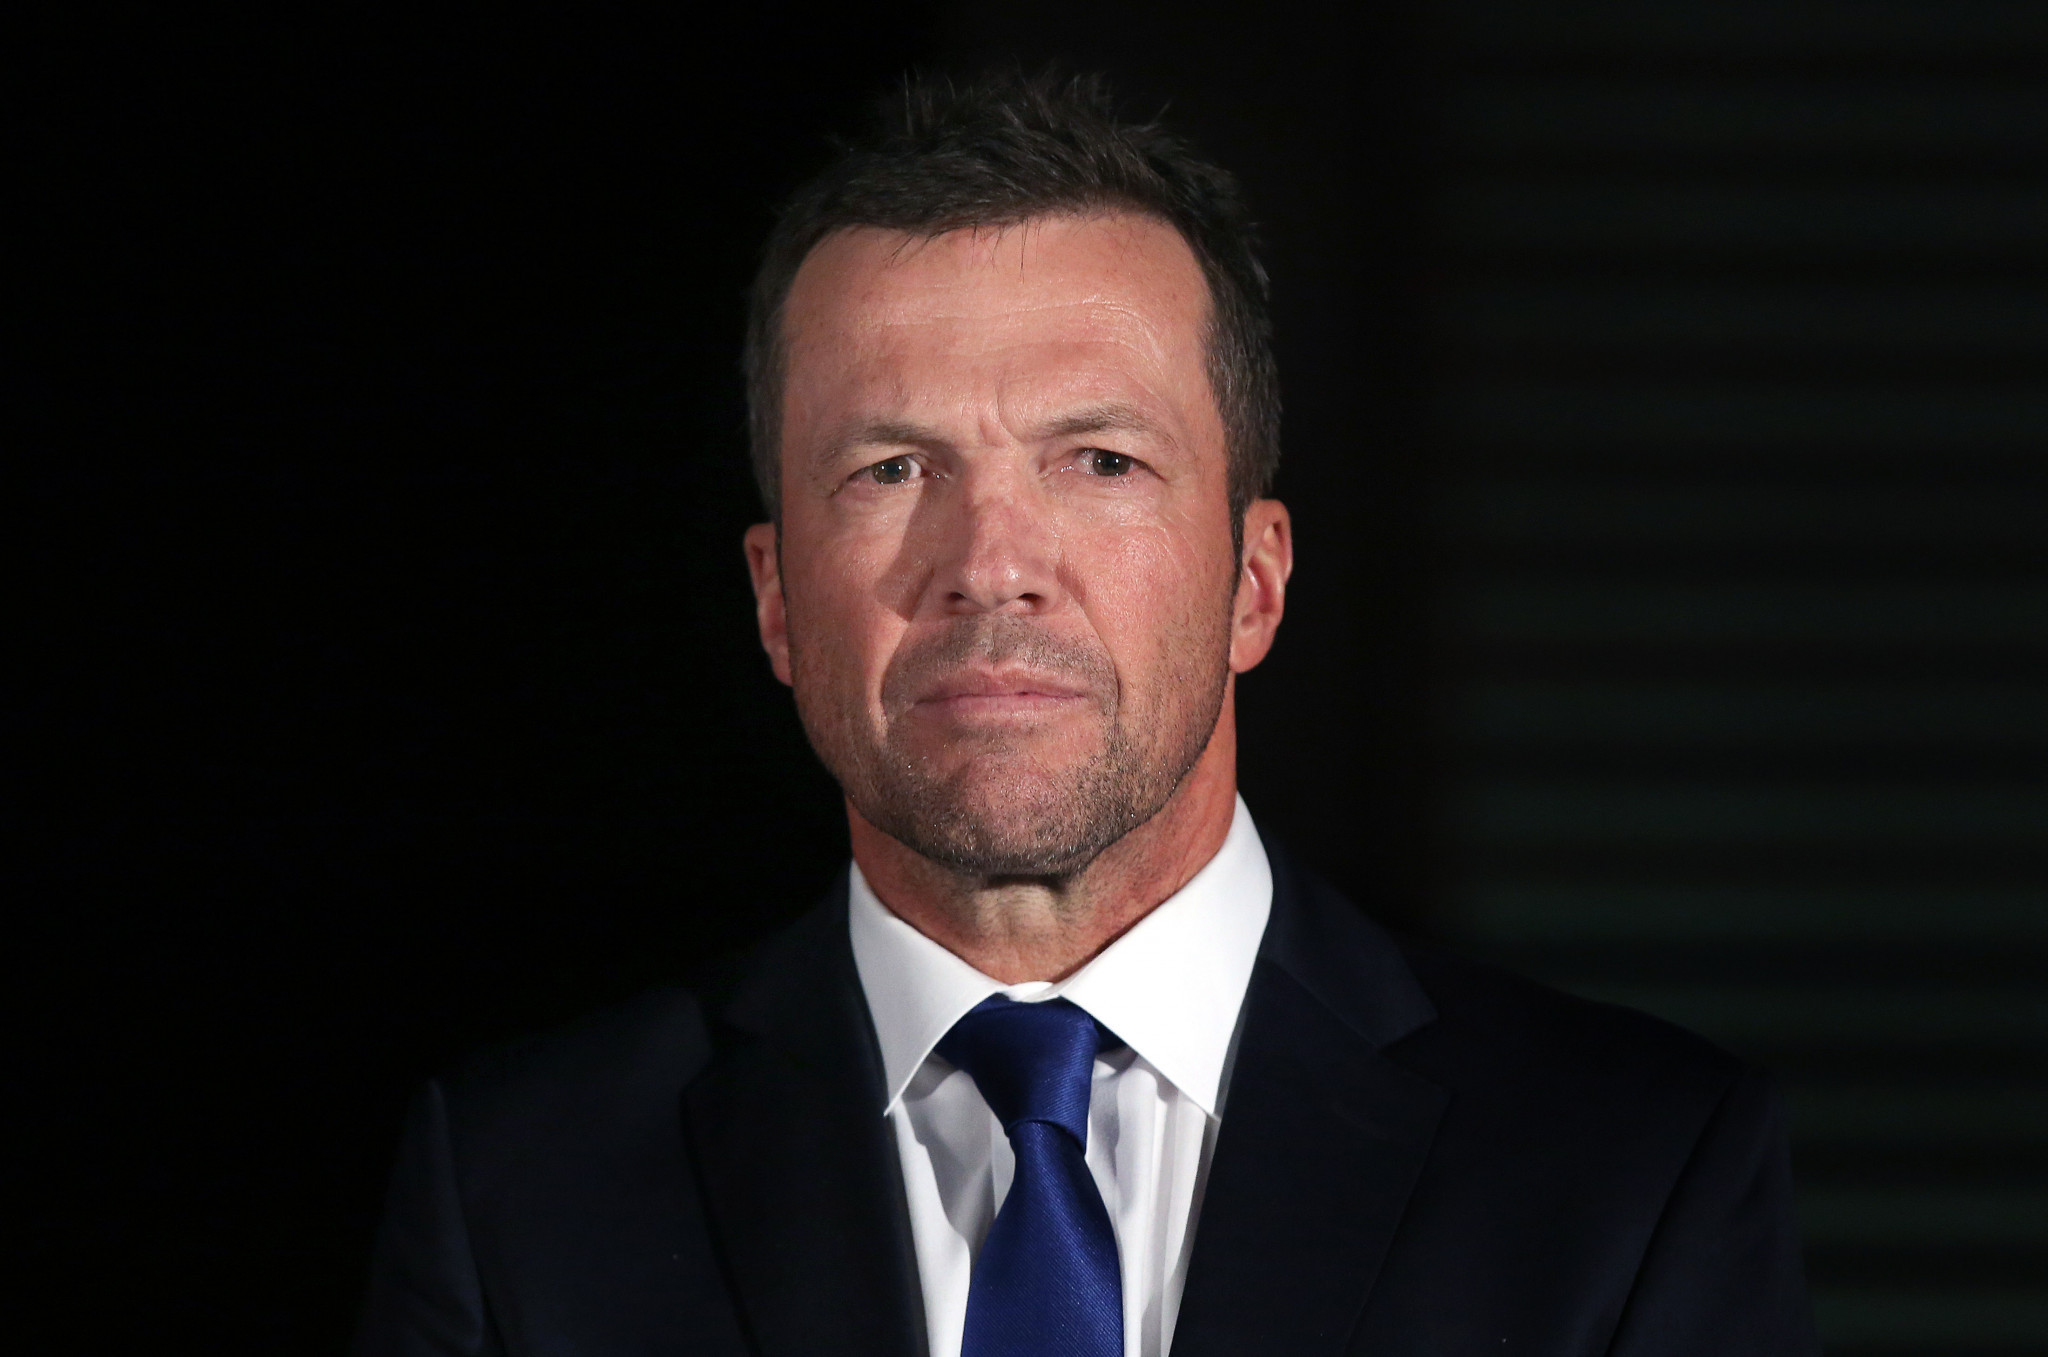 FIFA World Cup winner Lothar Matthäus has been unveiled as an ambassador of Morocco's bid for the 2026 edition of football's showpiece event ©Getty Images